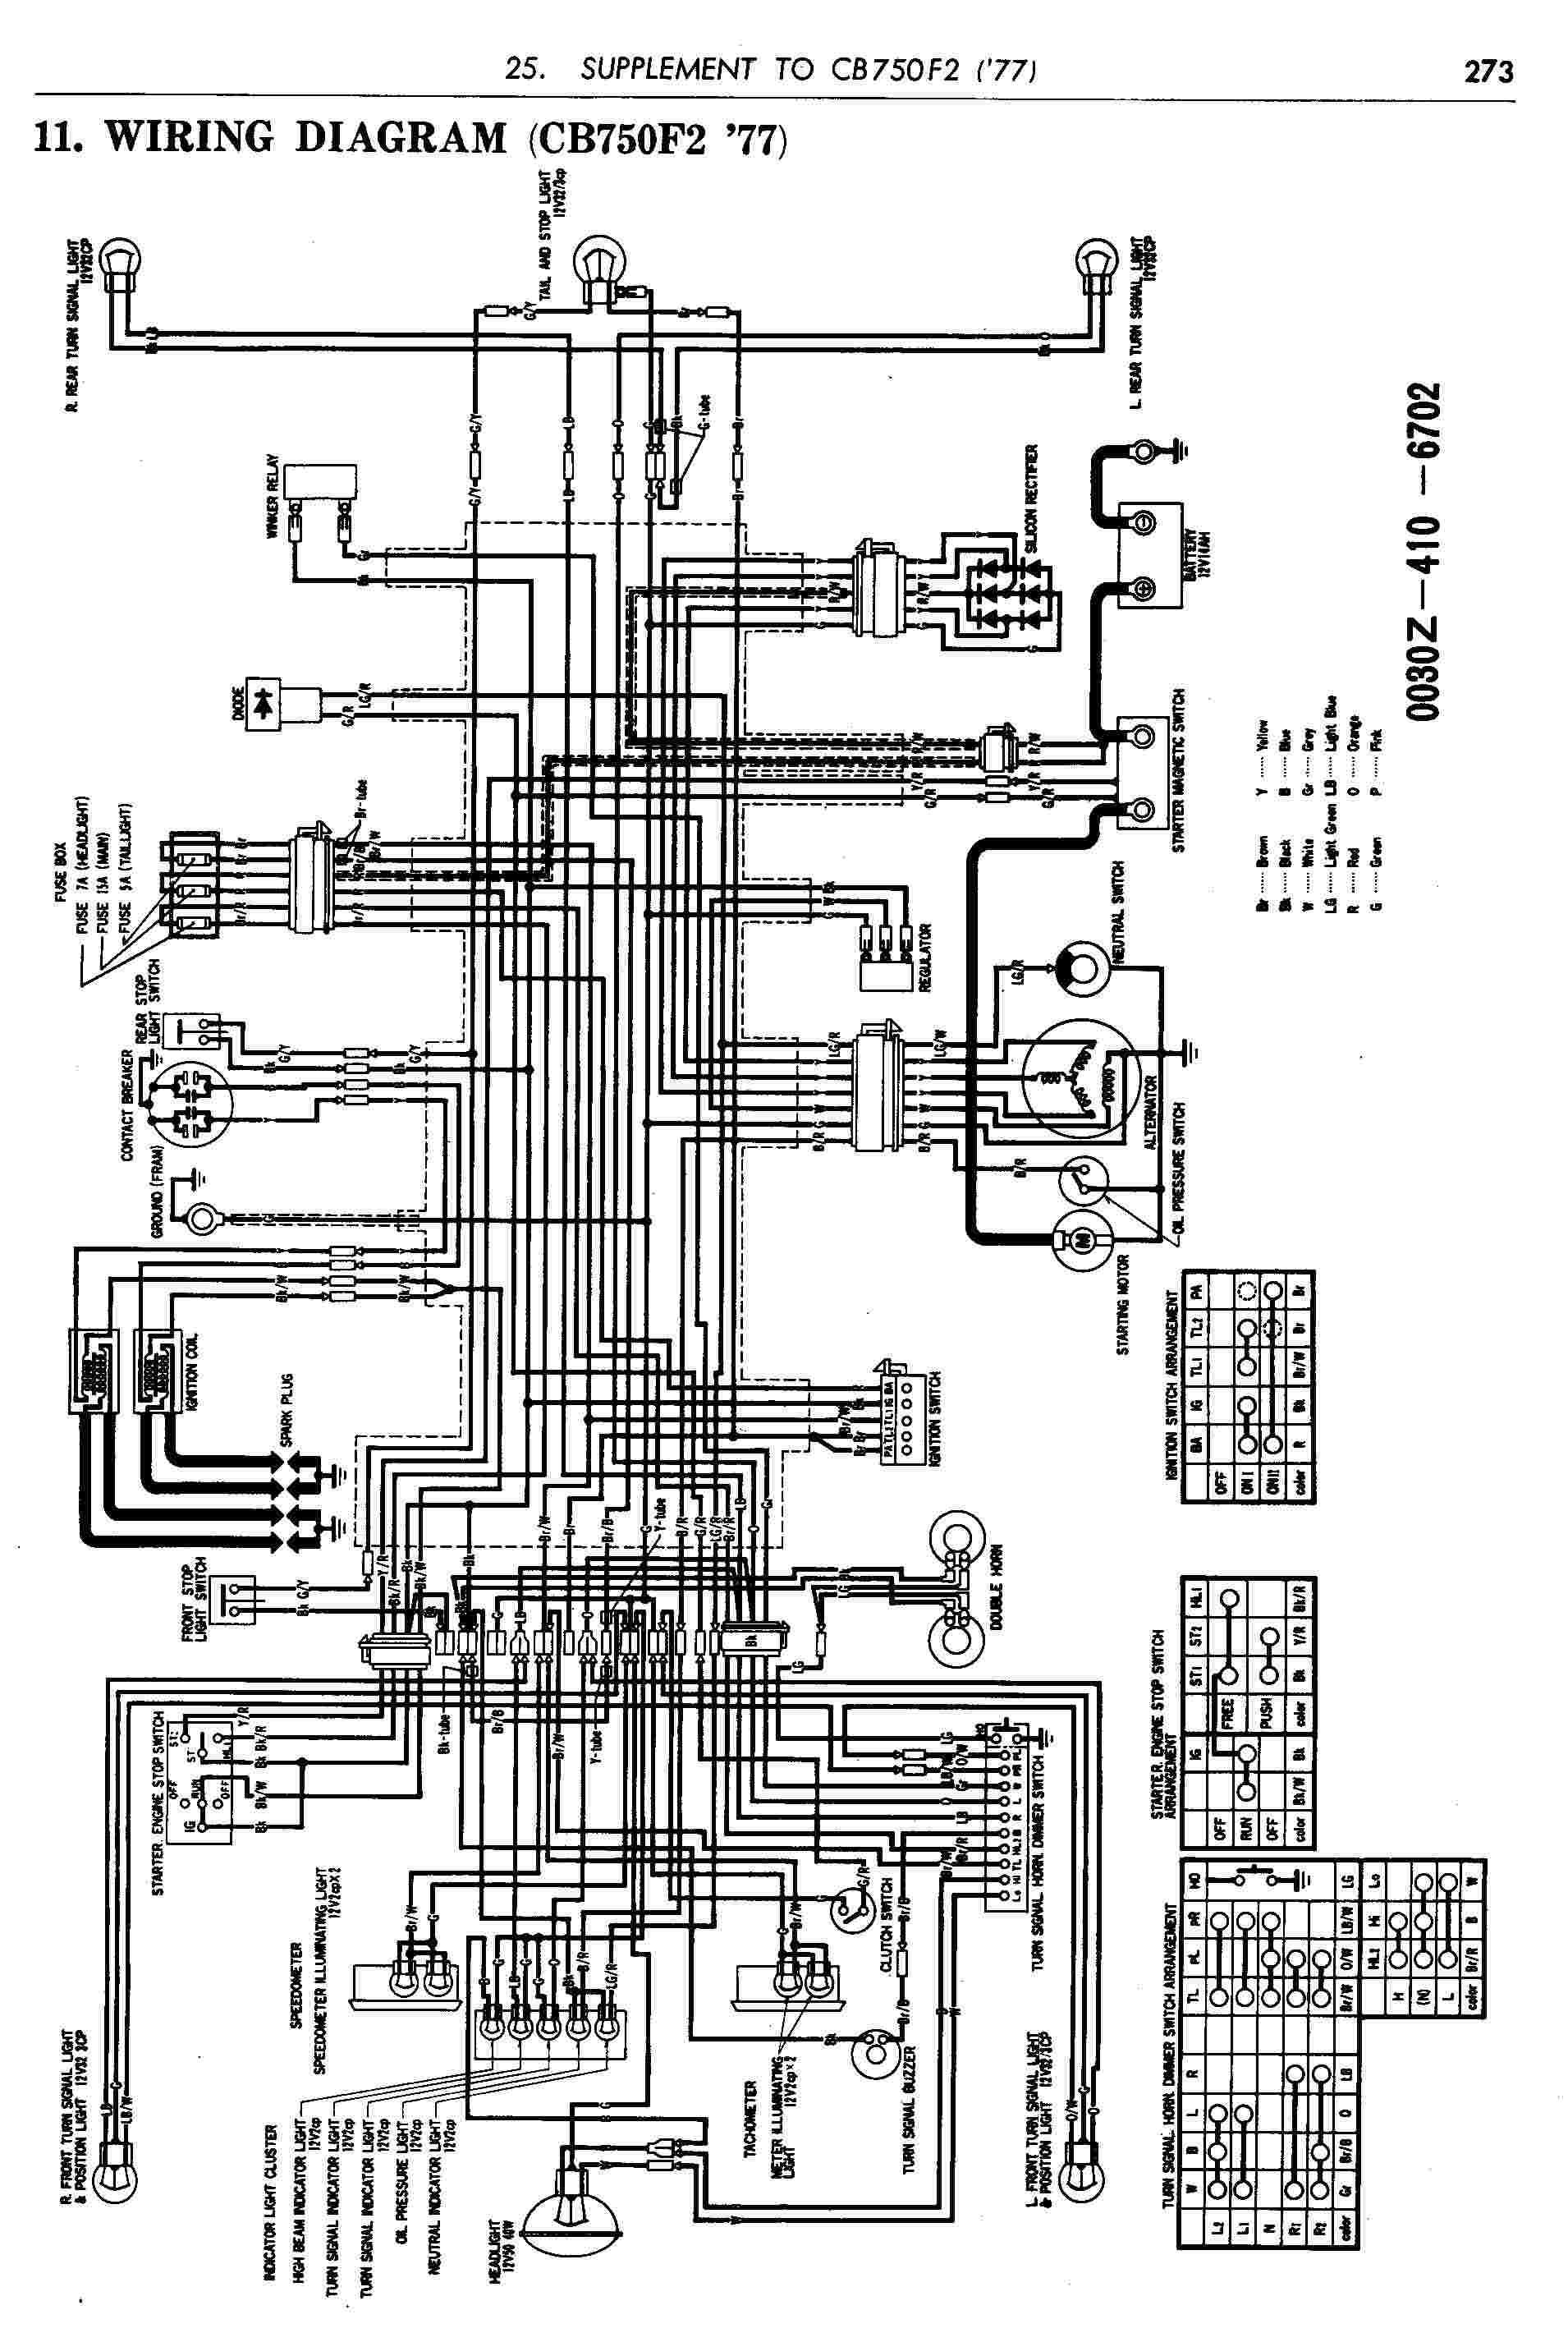 Wiring Diagram For Honda Motorcycle : Honda motorcycle wiring diagrams cb f electrical